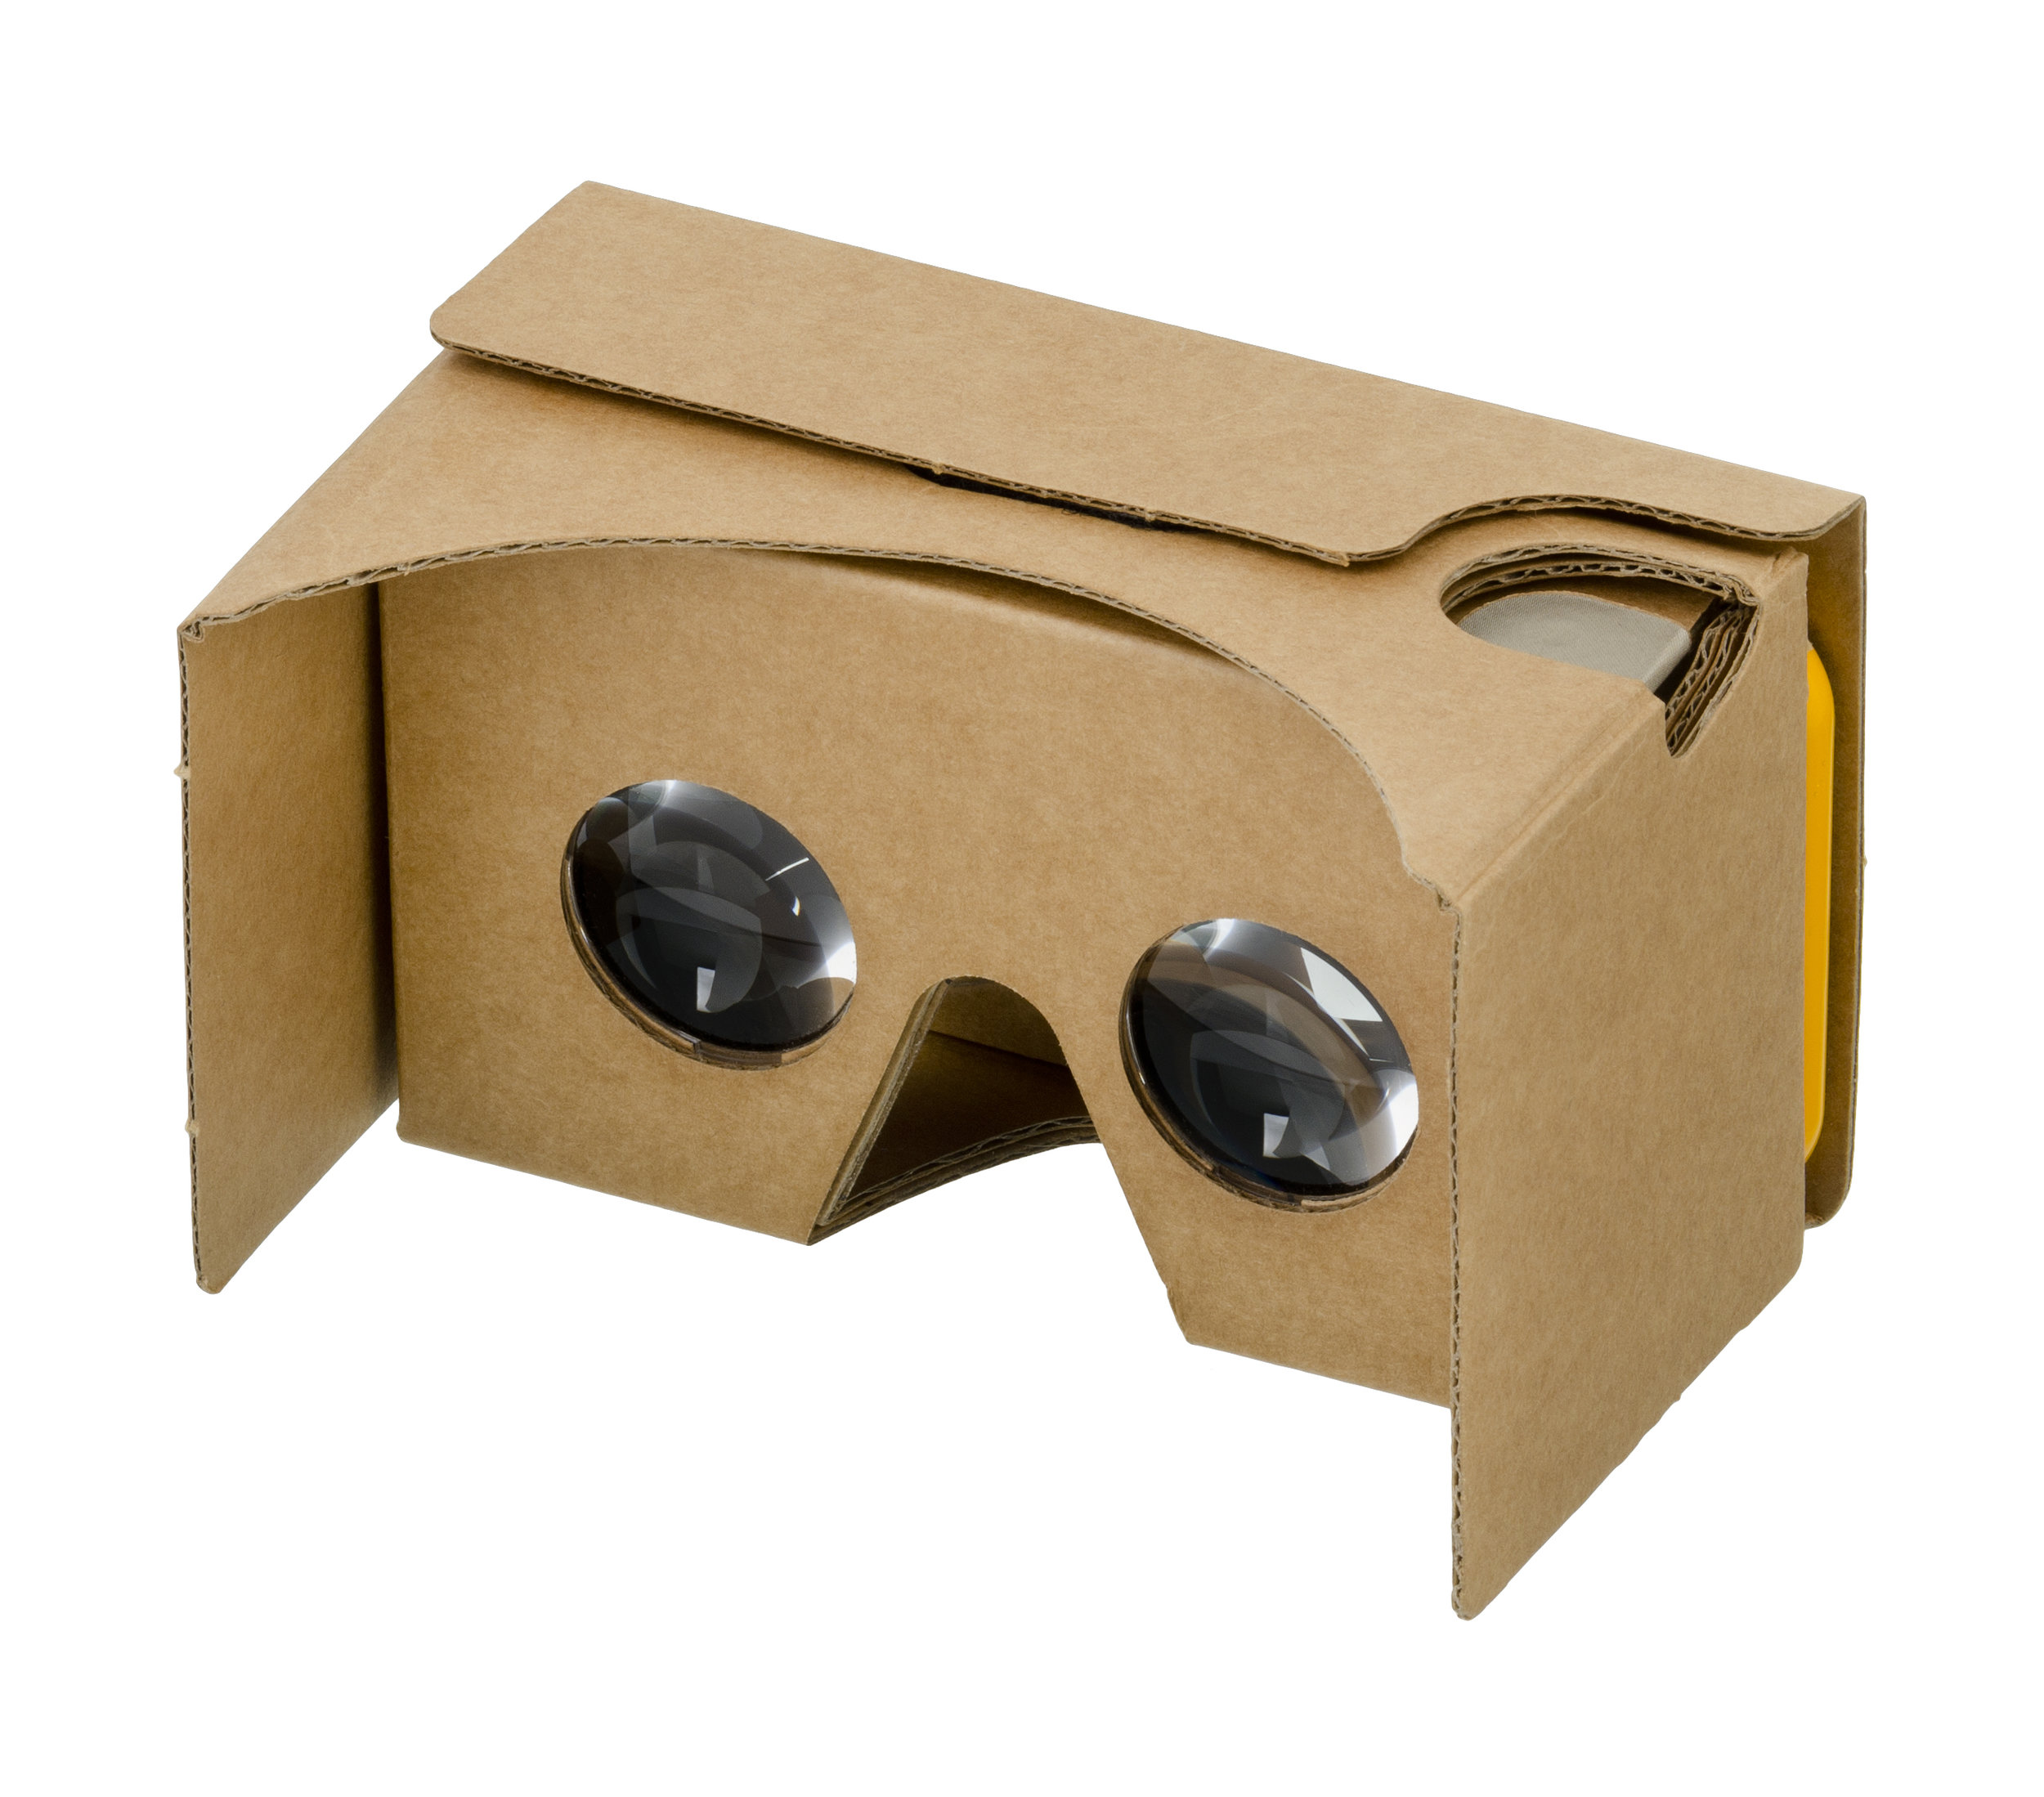 Google Cardboard is one of the more affordable options for VR, but users will not receive the full VR experience with it.  Photo Credit: Wikimedia Commons